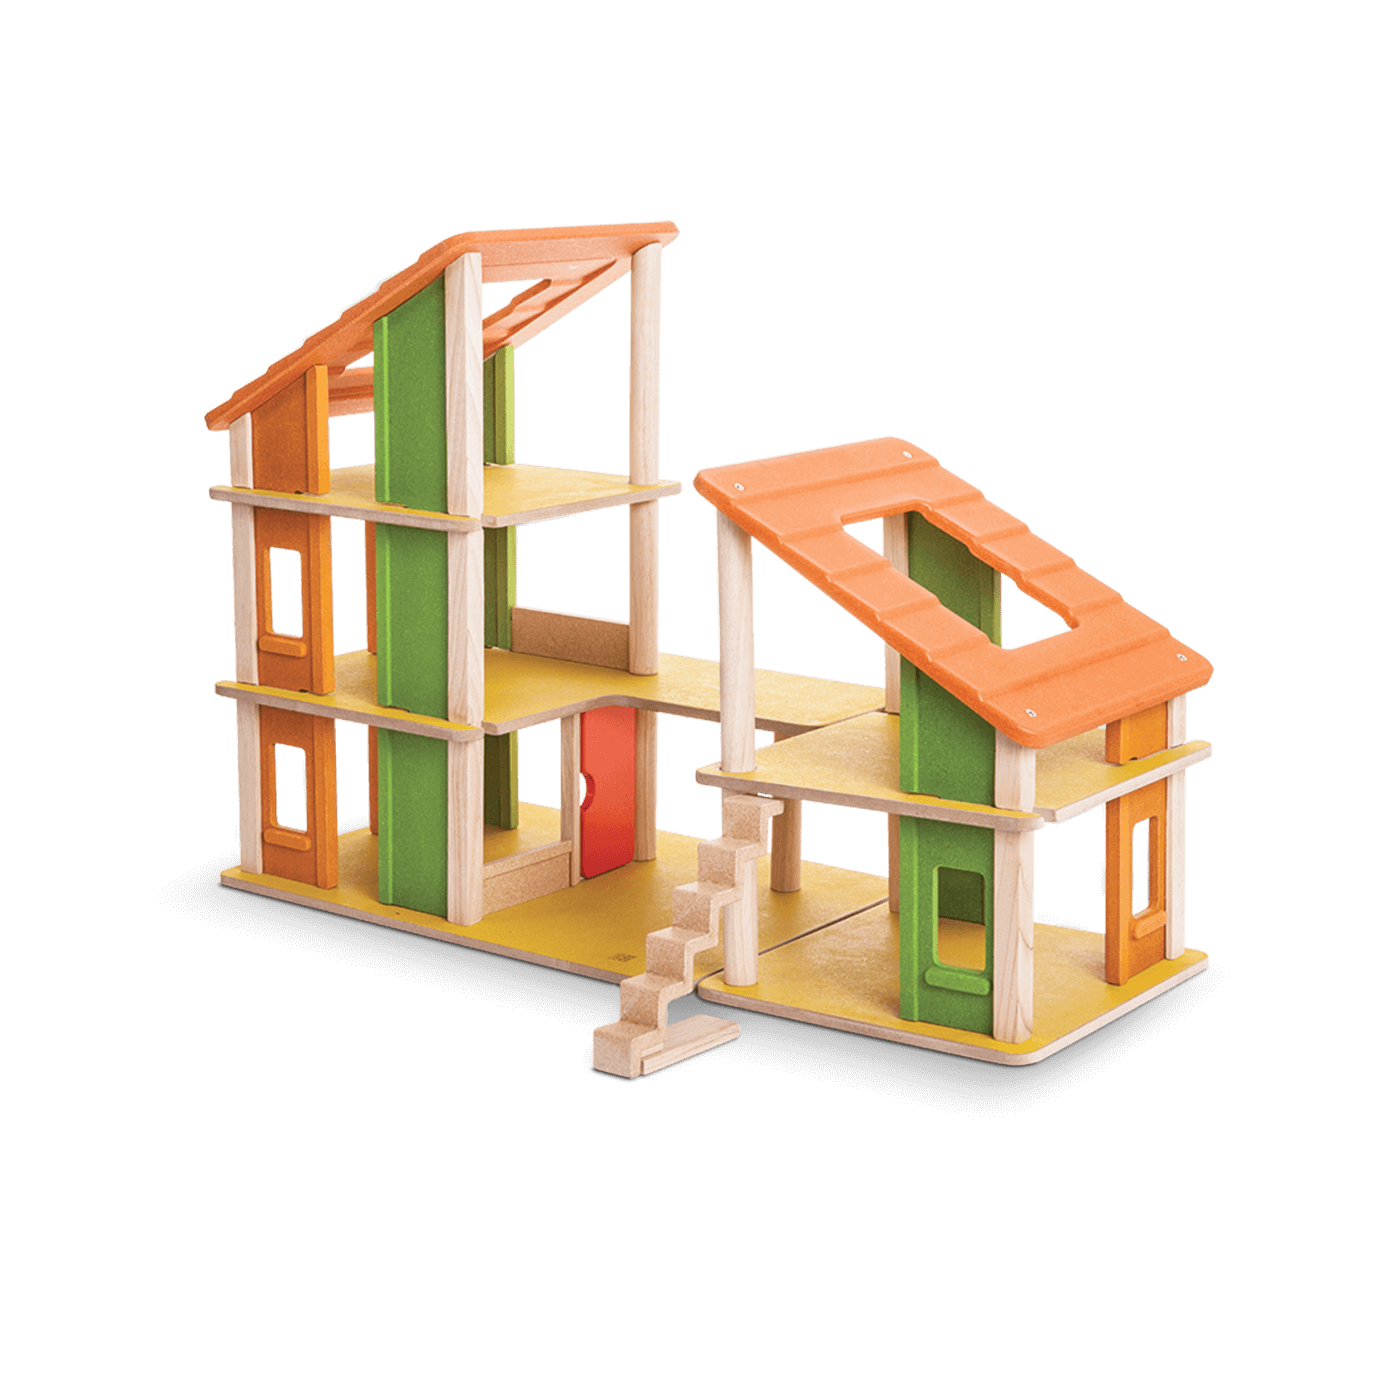 7609_PlanToys_CHALET_DOLLHOUSE_WITHOUT_FURNITURE_Pretend_Play_Imagination_Social_Language_and_Communications_Fine_Motor_3yrs_Wooden_toys_Education_toys_Safety_Toys_Non-toxic_0.png